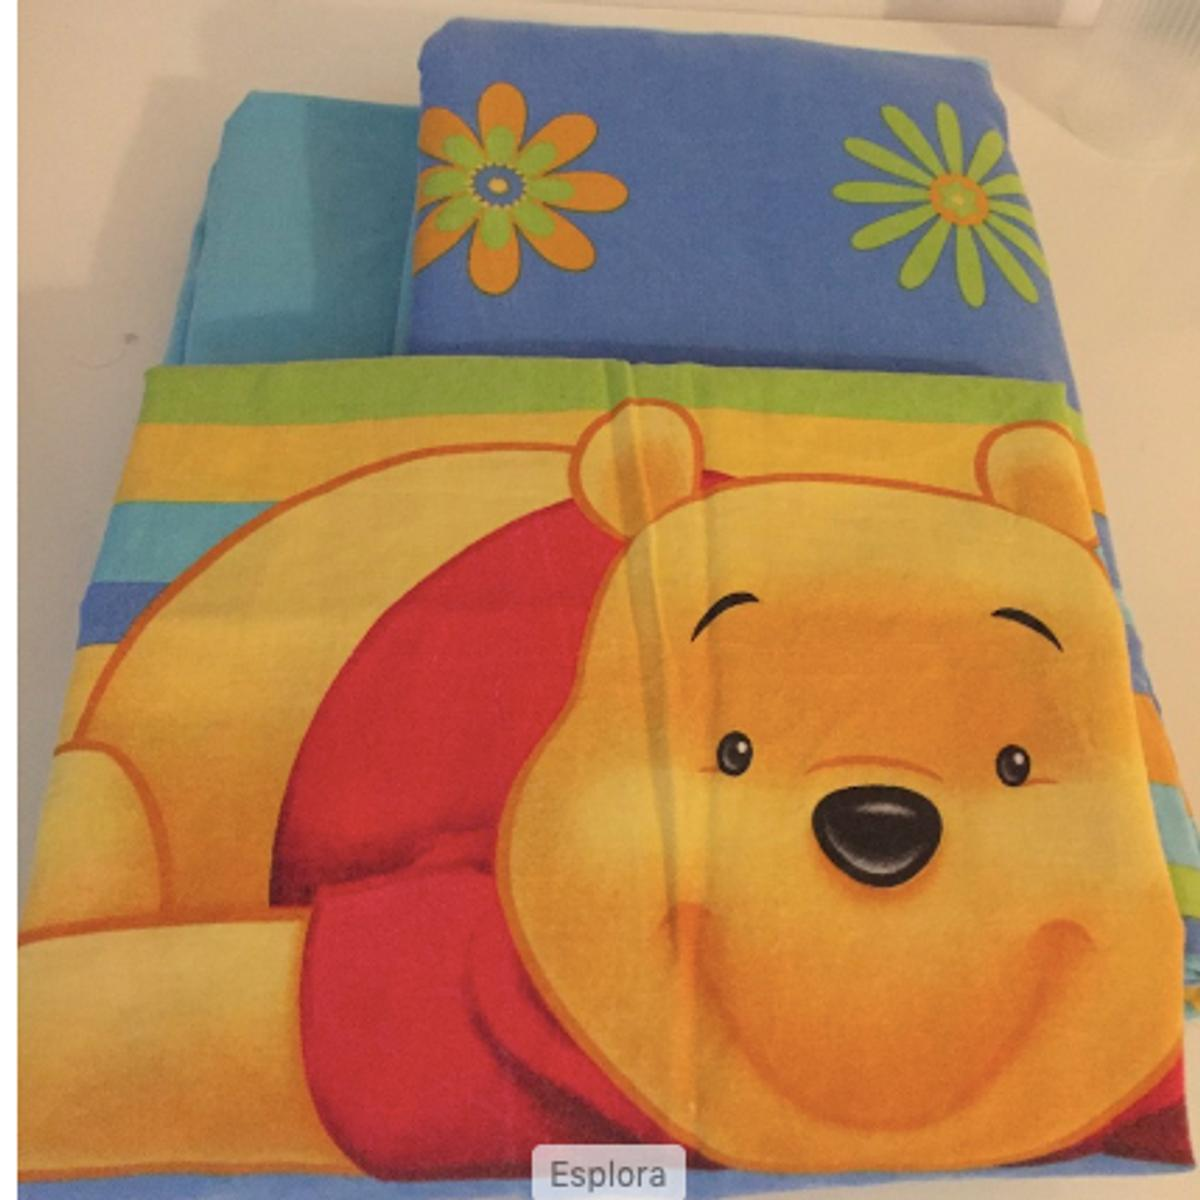 Winnie The Pooh Lenzuola.4 Completi Lenzuola Caleffi Winnie The Pooh In 20032 Cormano For